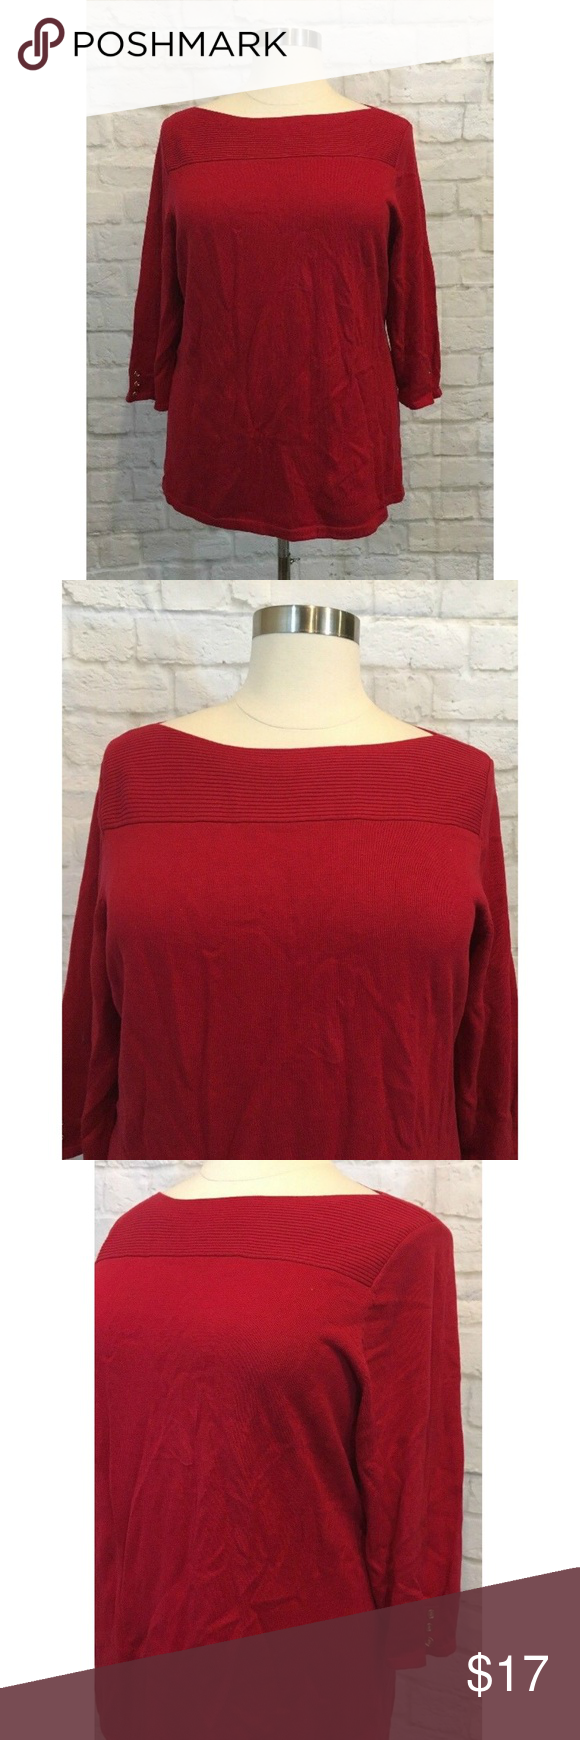 0bc7dfb12651b Karen Scott Womens Boat Neck Sweater Red Size 2X Karen Scott Plus Size 2X  Sweater Red Ballerina Boat Neck 3 4 Sleeve Cotton Karen Scott Ballerina Boat  Neck ...